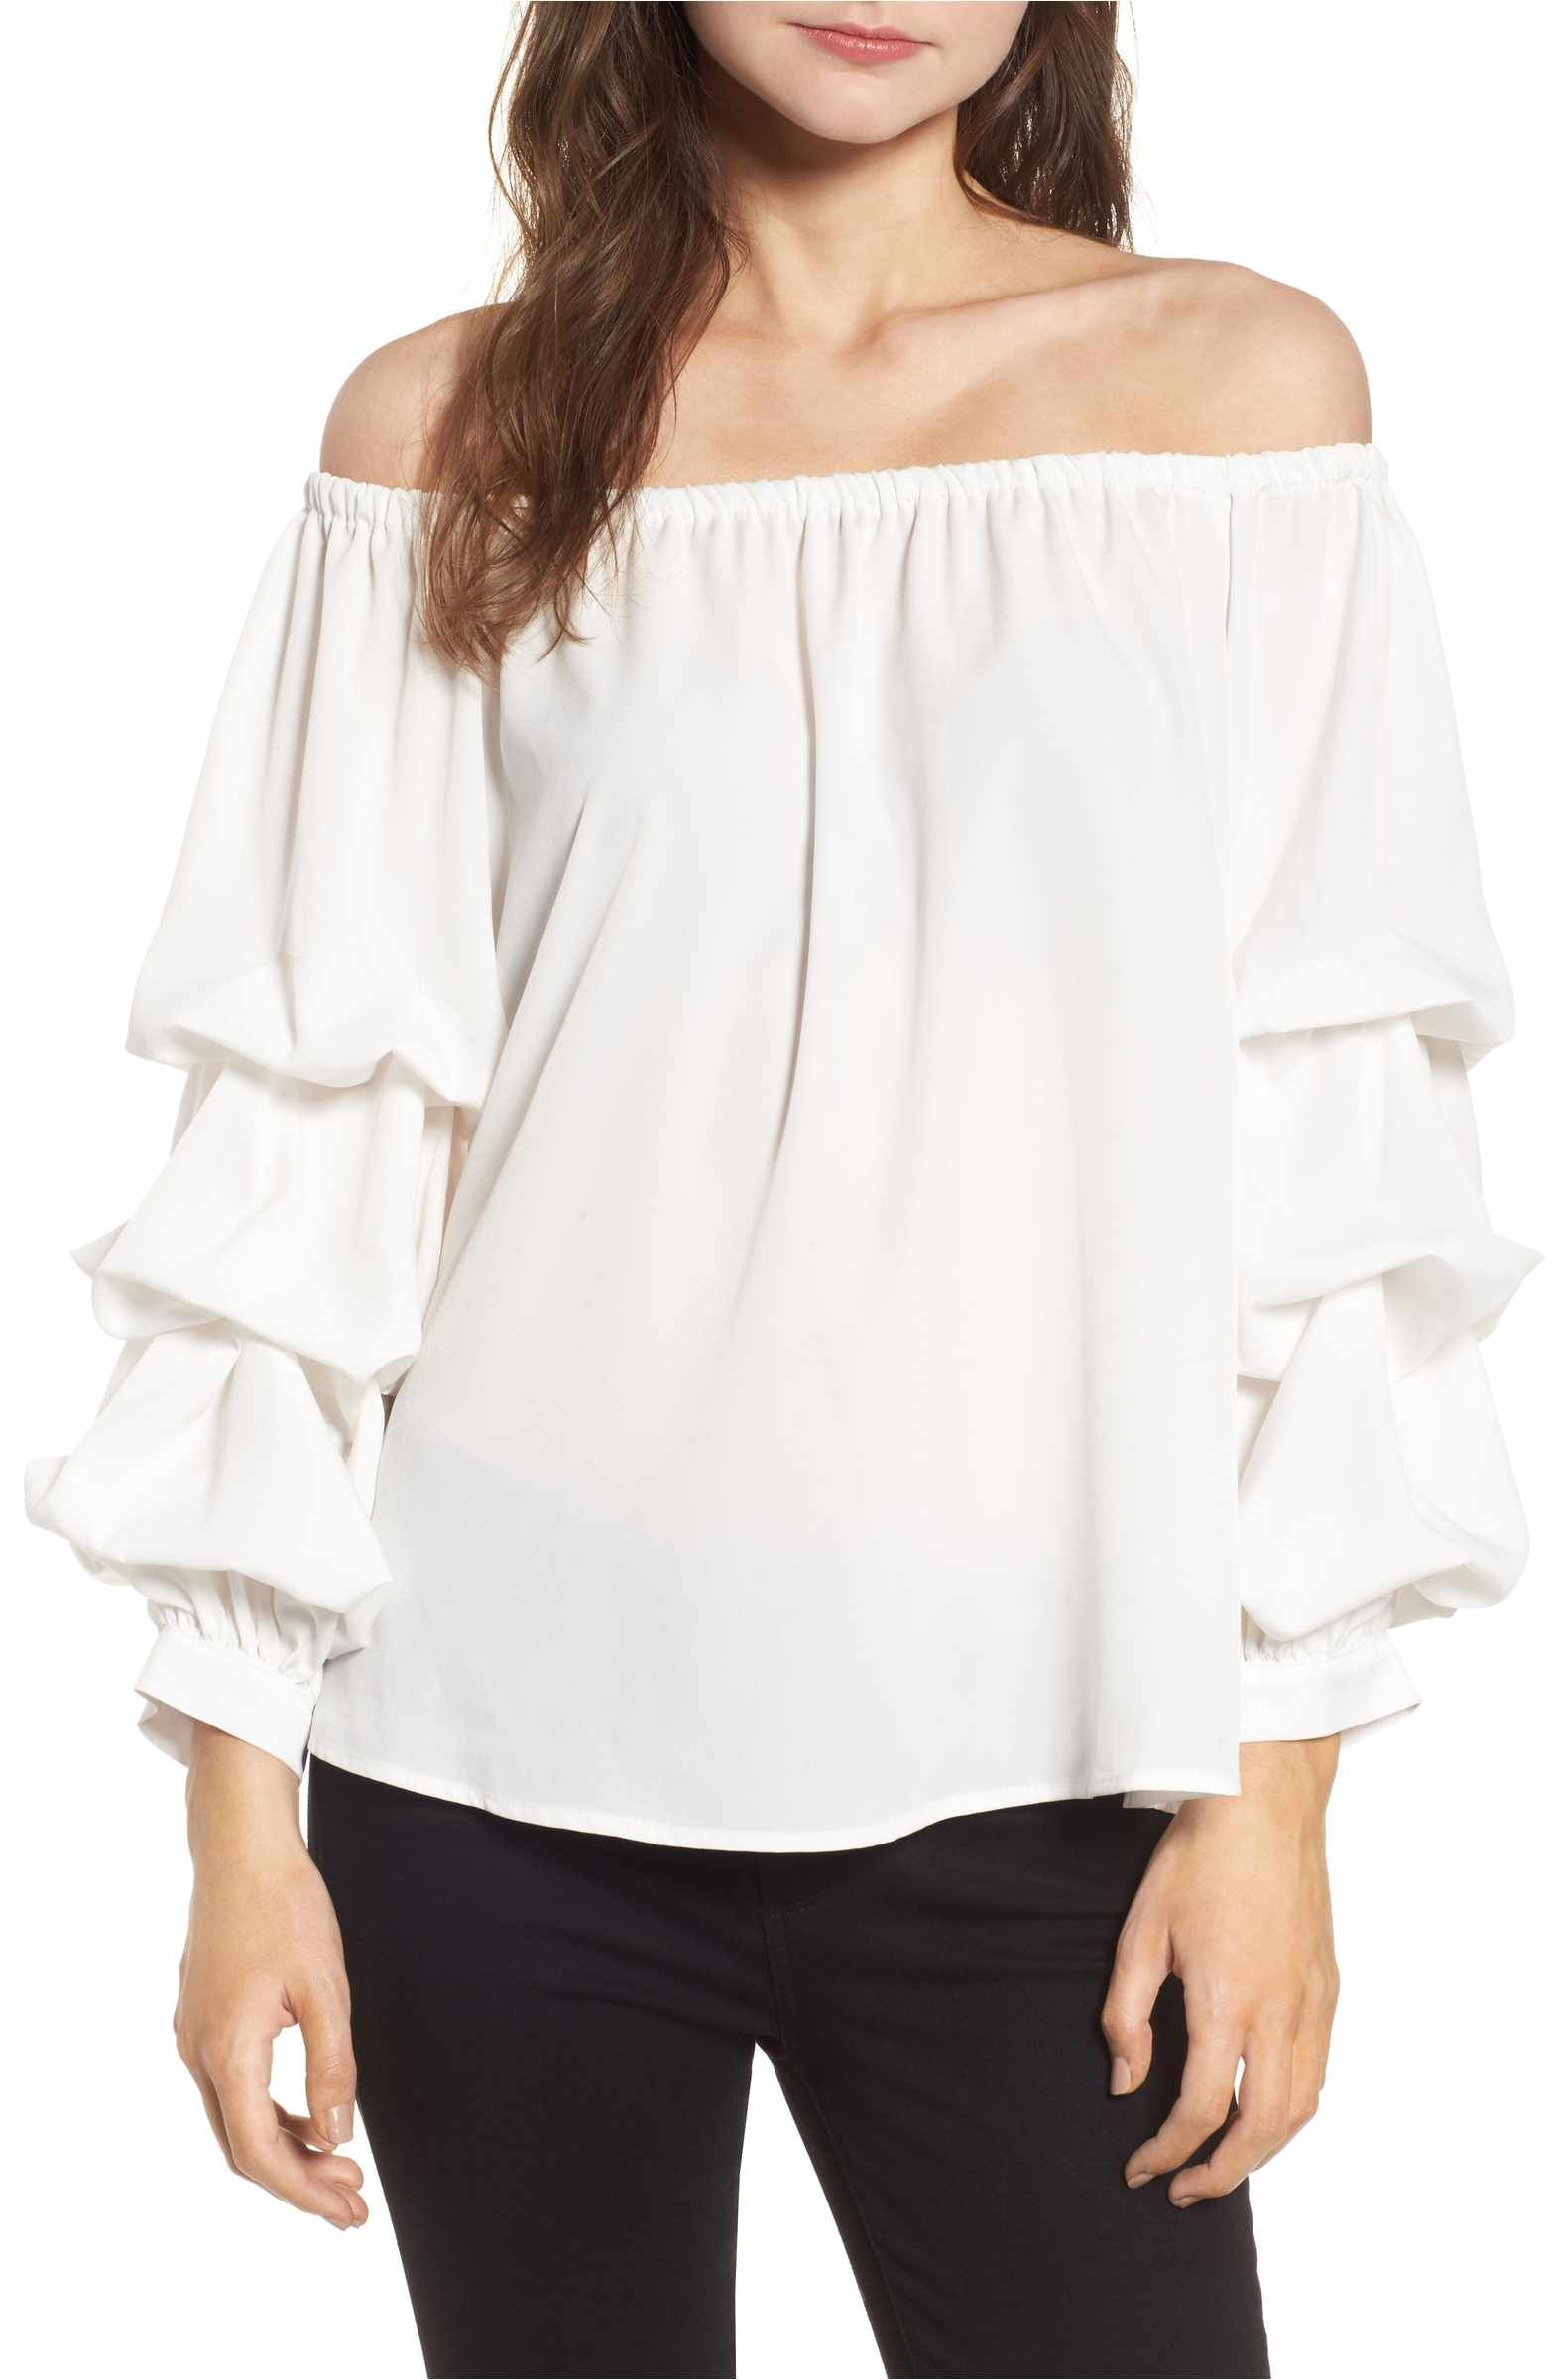 e53492e41c7f19 Main Image - Chelsea28 Off the Shoulder Top | Shopping | Tops, Off ...